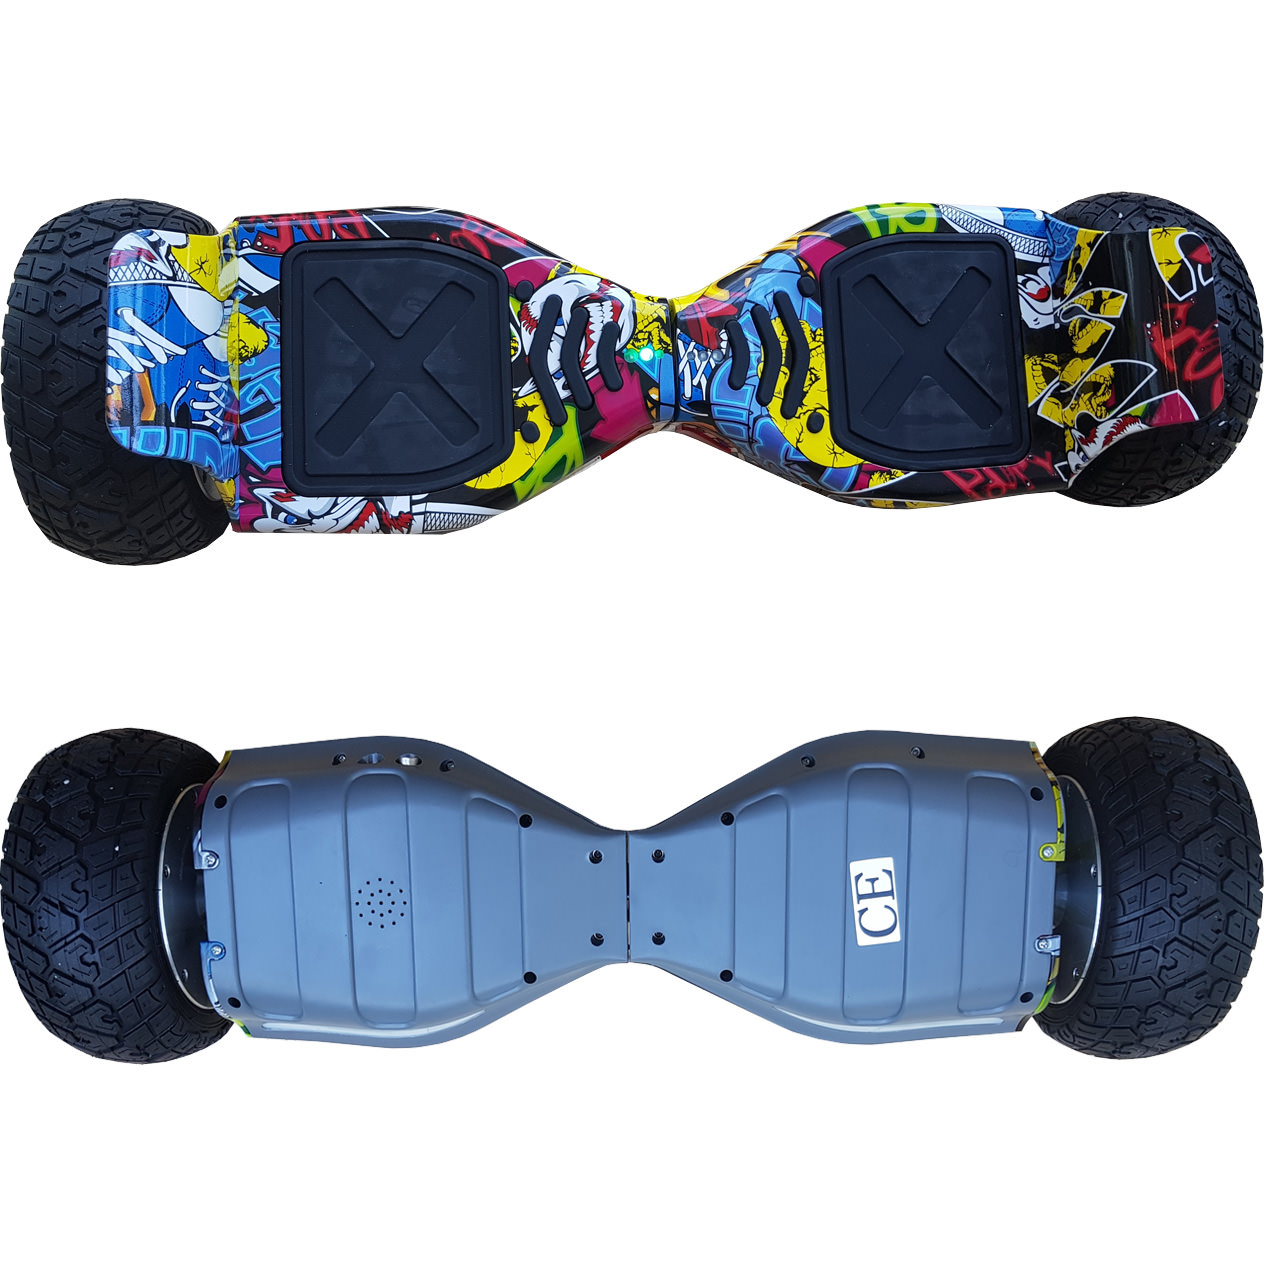 hoverboard hummer hip hop 8 5 inch hover dream 77 ood. Black Bedroom Furniture Sets. Home Design Ideas